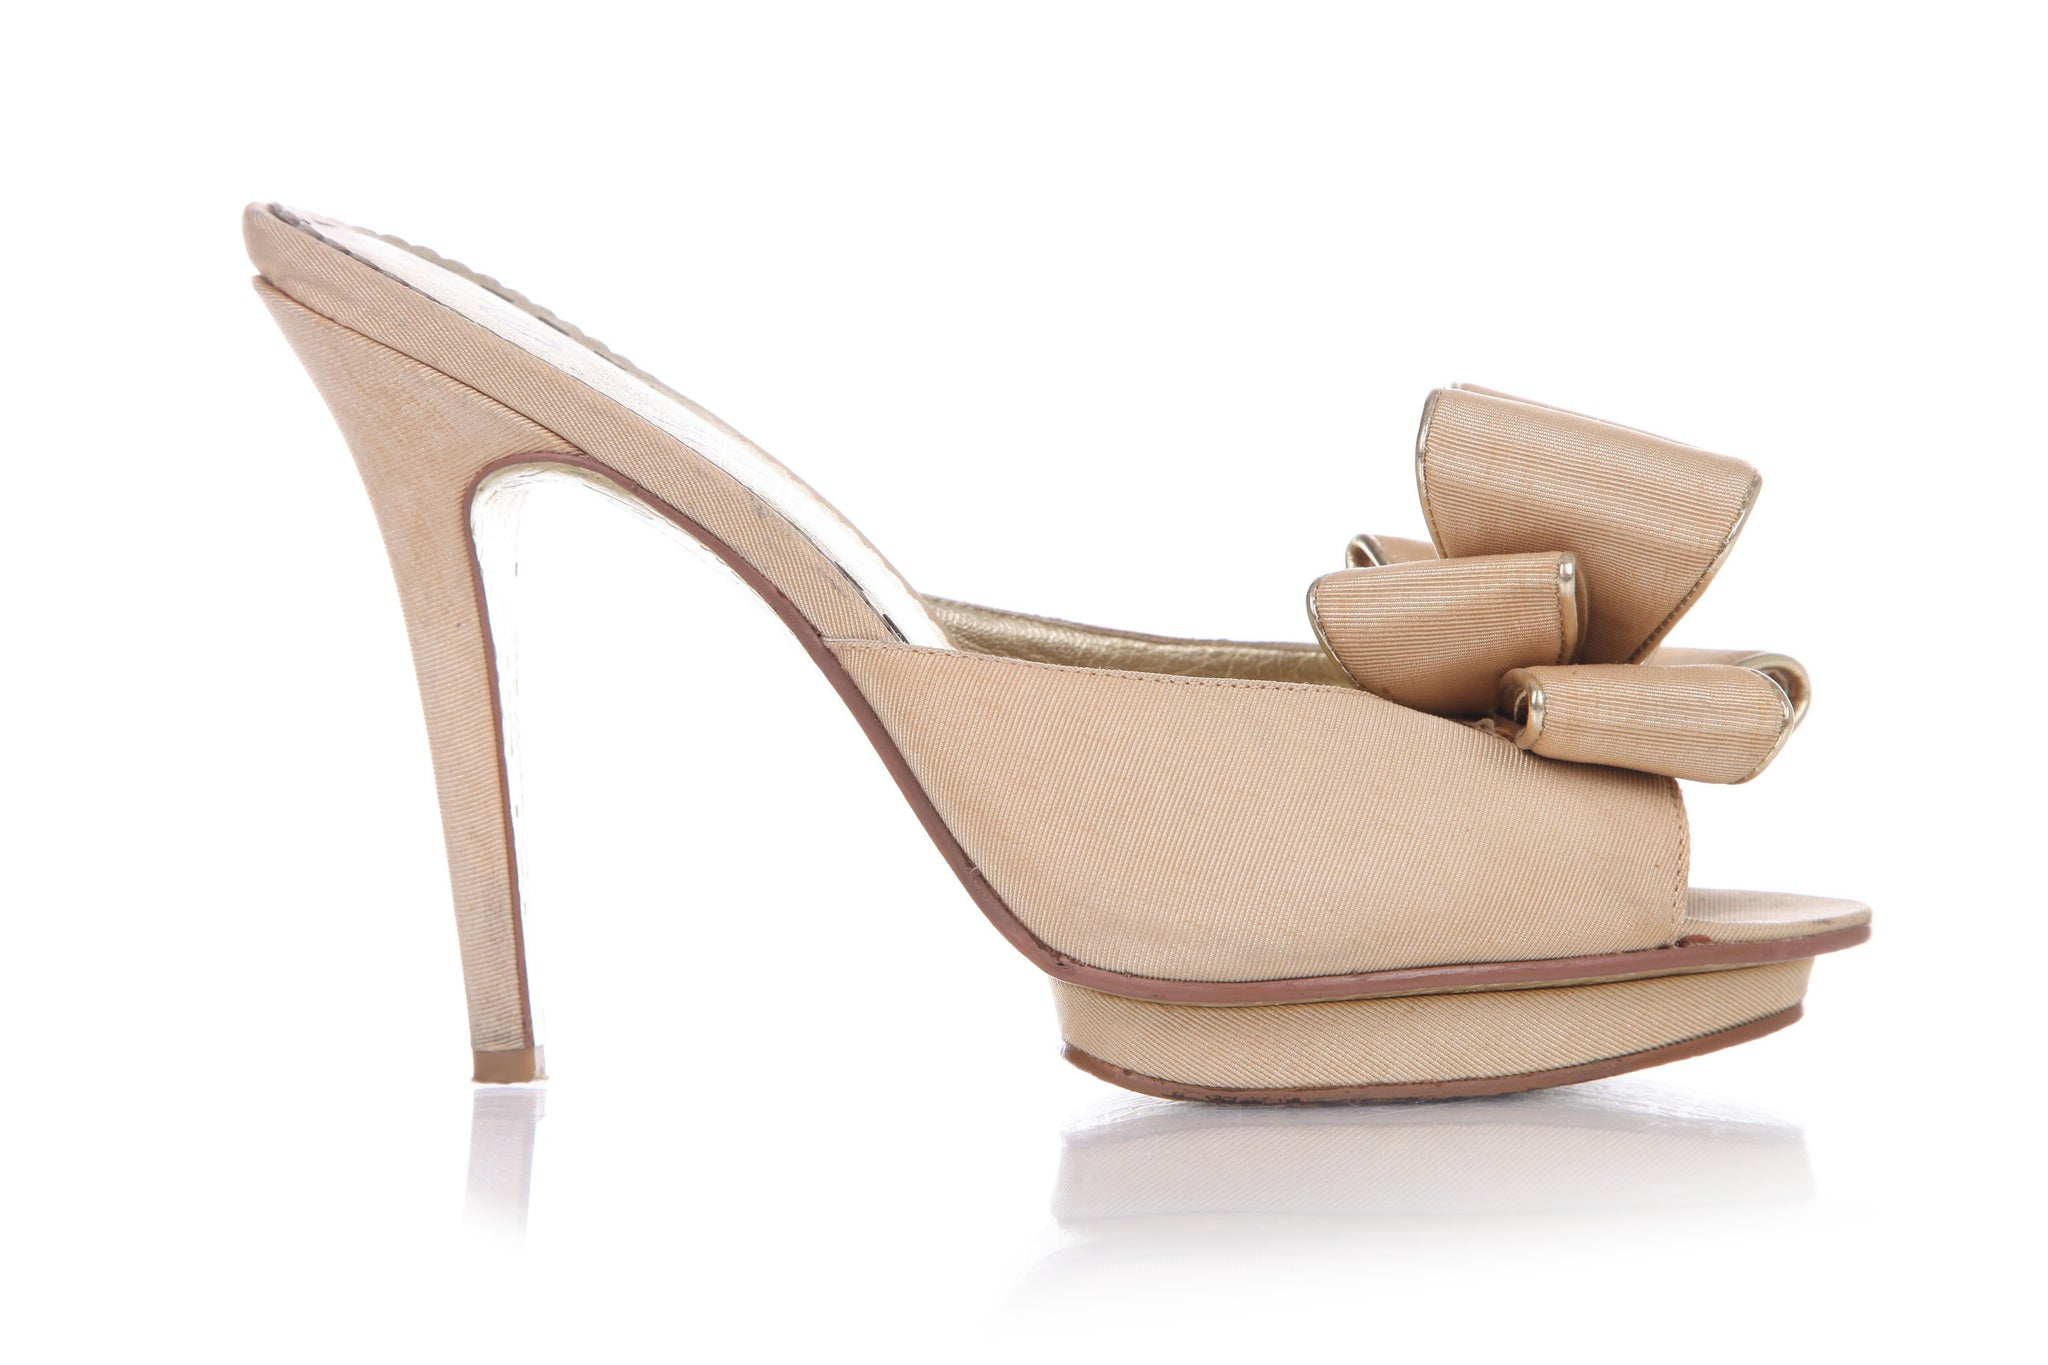 BEVERLY FELDMAN Slip On Heels Nude Gold D'Orsay Bow Platform Pumps Size 9.5